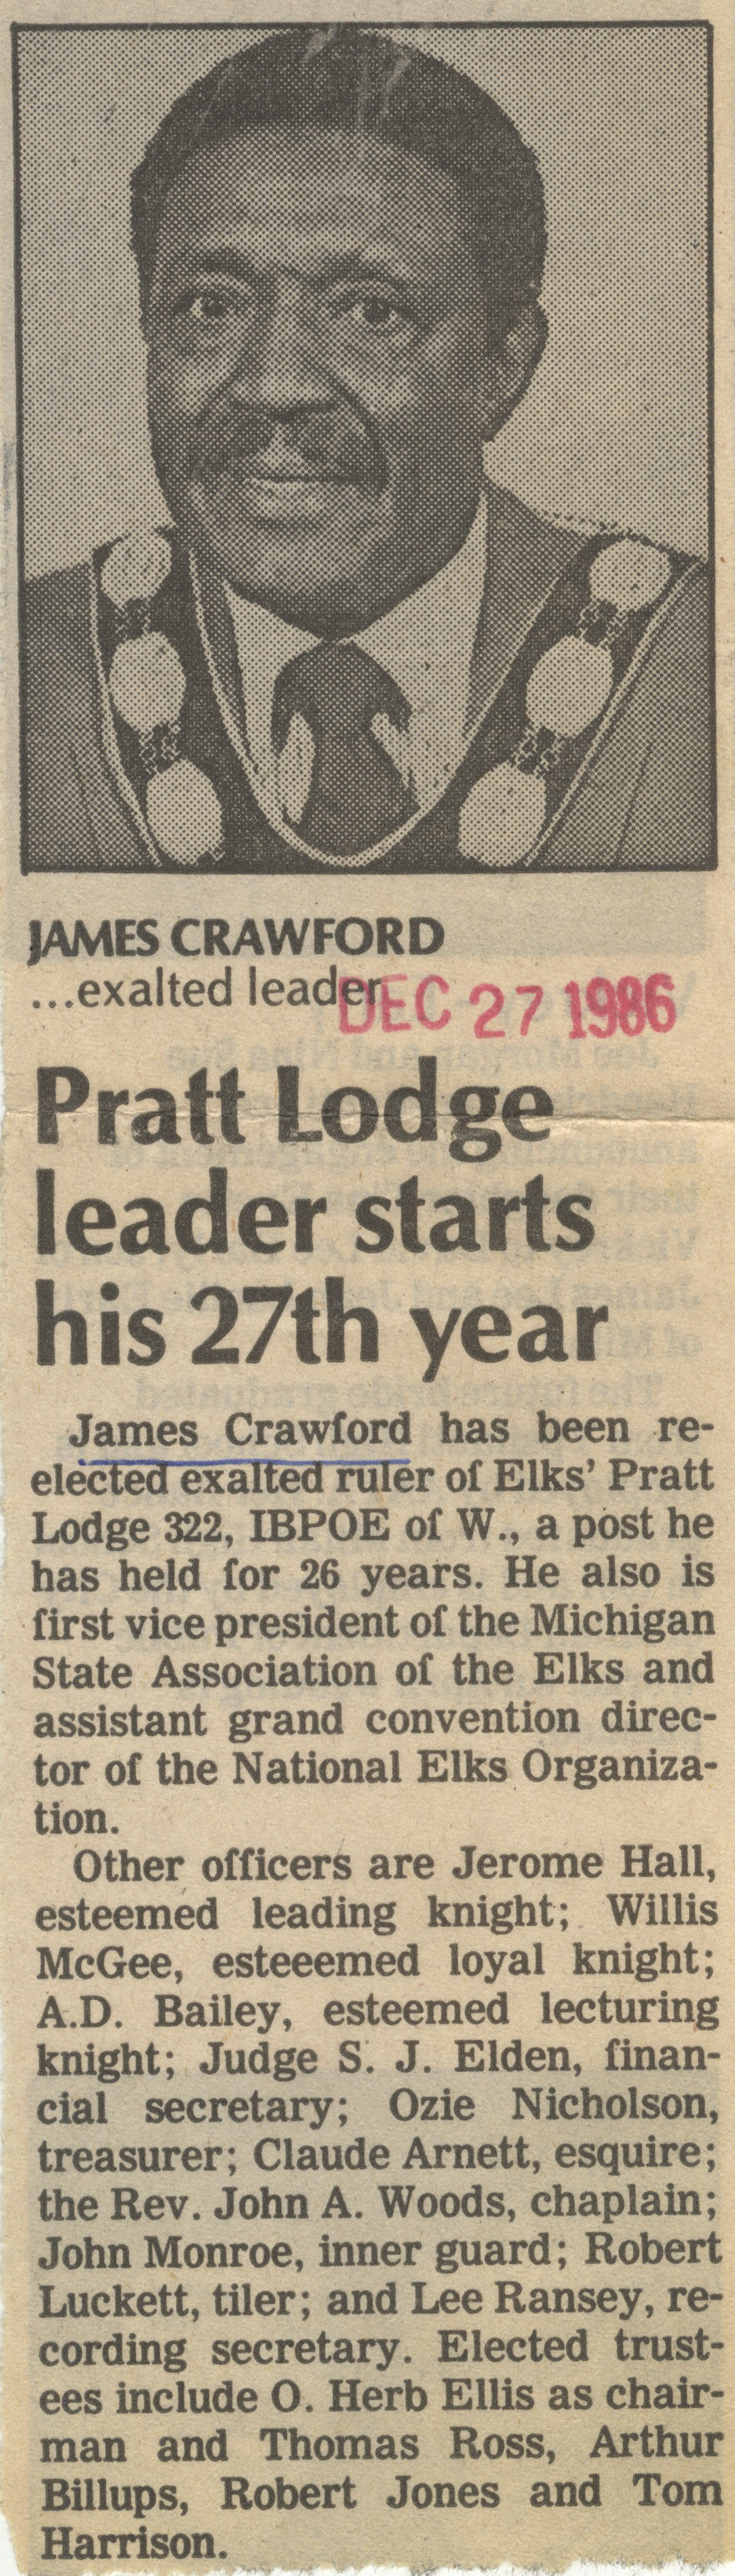 Pratt Lodge Leader Starts His 27th Year image